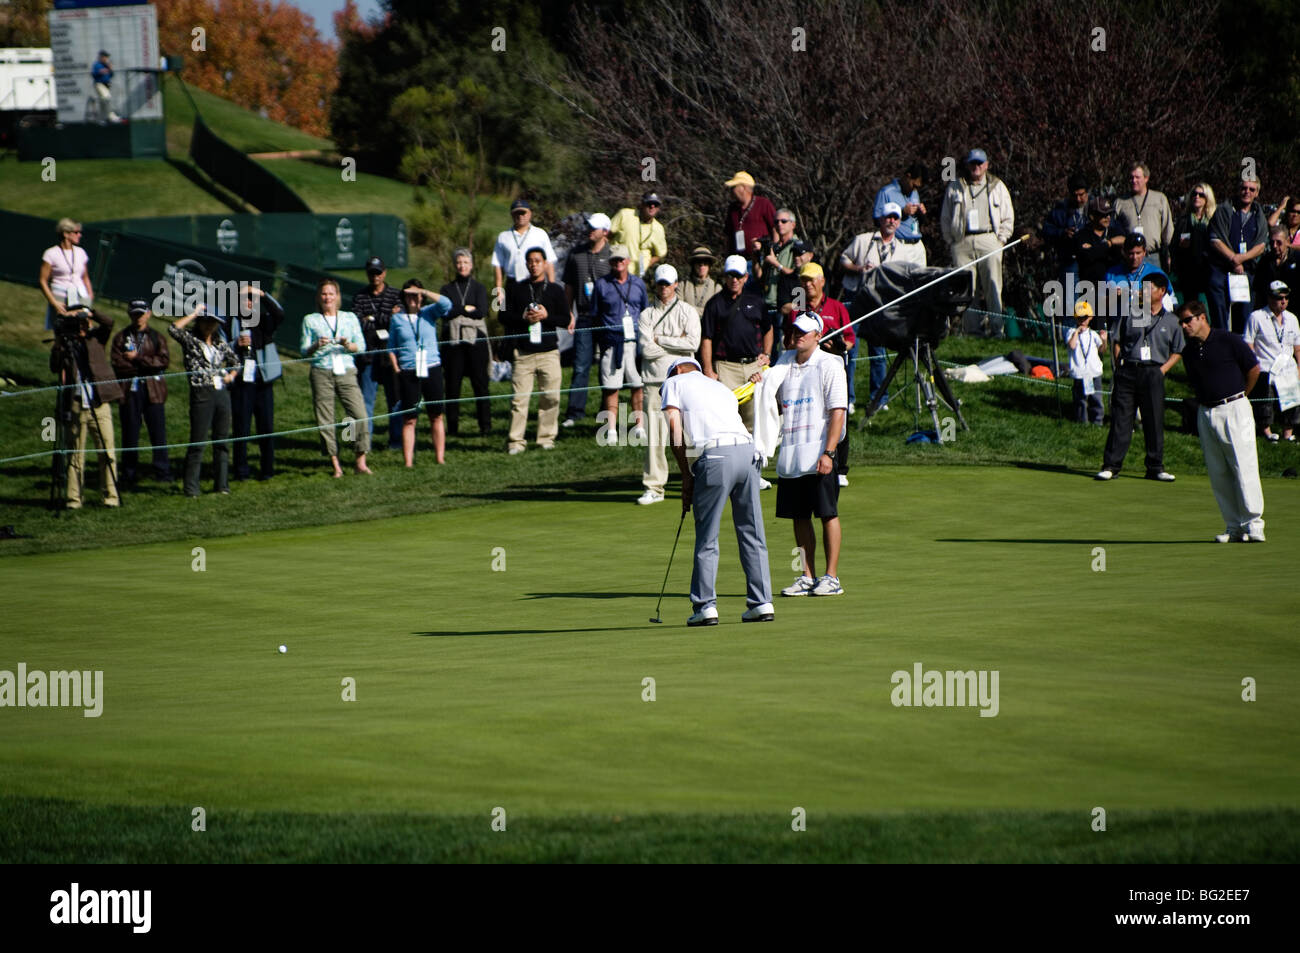 Anthony Kim putts on the 18th green of Sherwood CC during the Pro Am round of the Chevron World Golf Challenge. - Stock Image